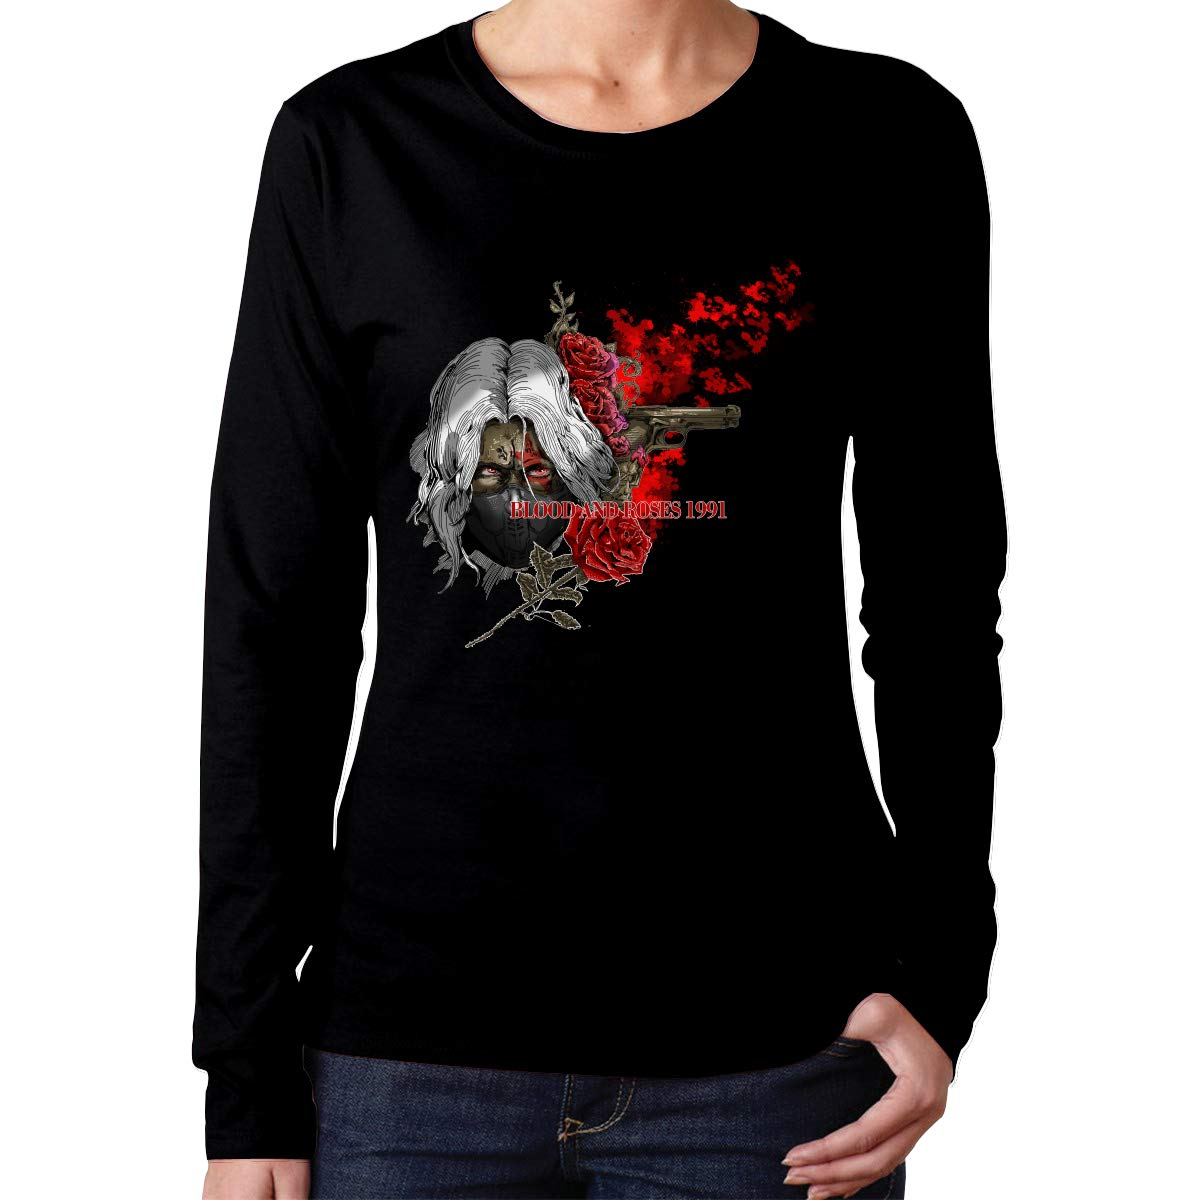 Amazon.com: T Shirts Womens White Blood Red Roses 1991 Real ...